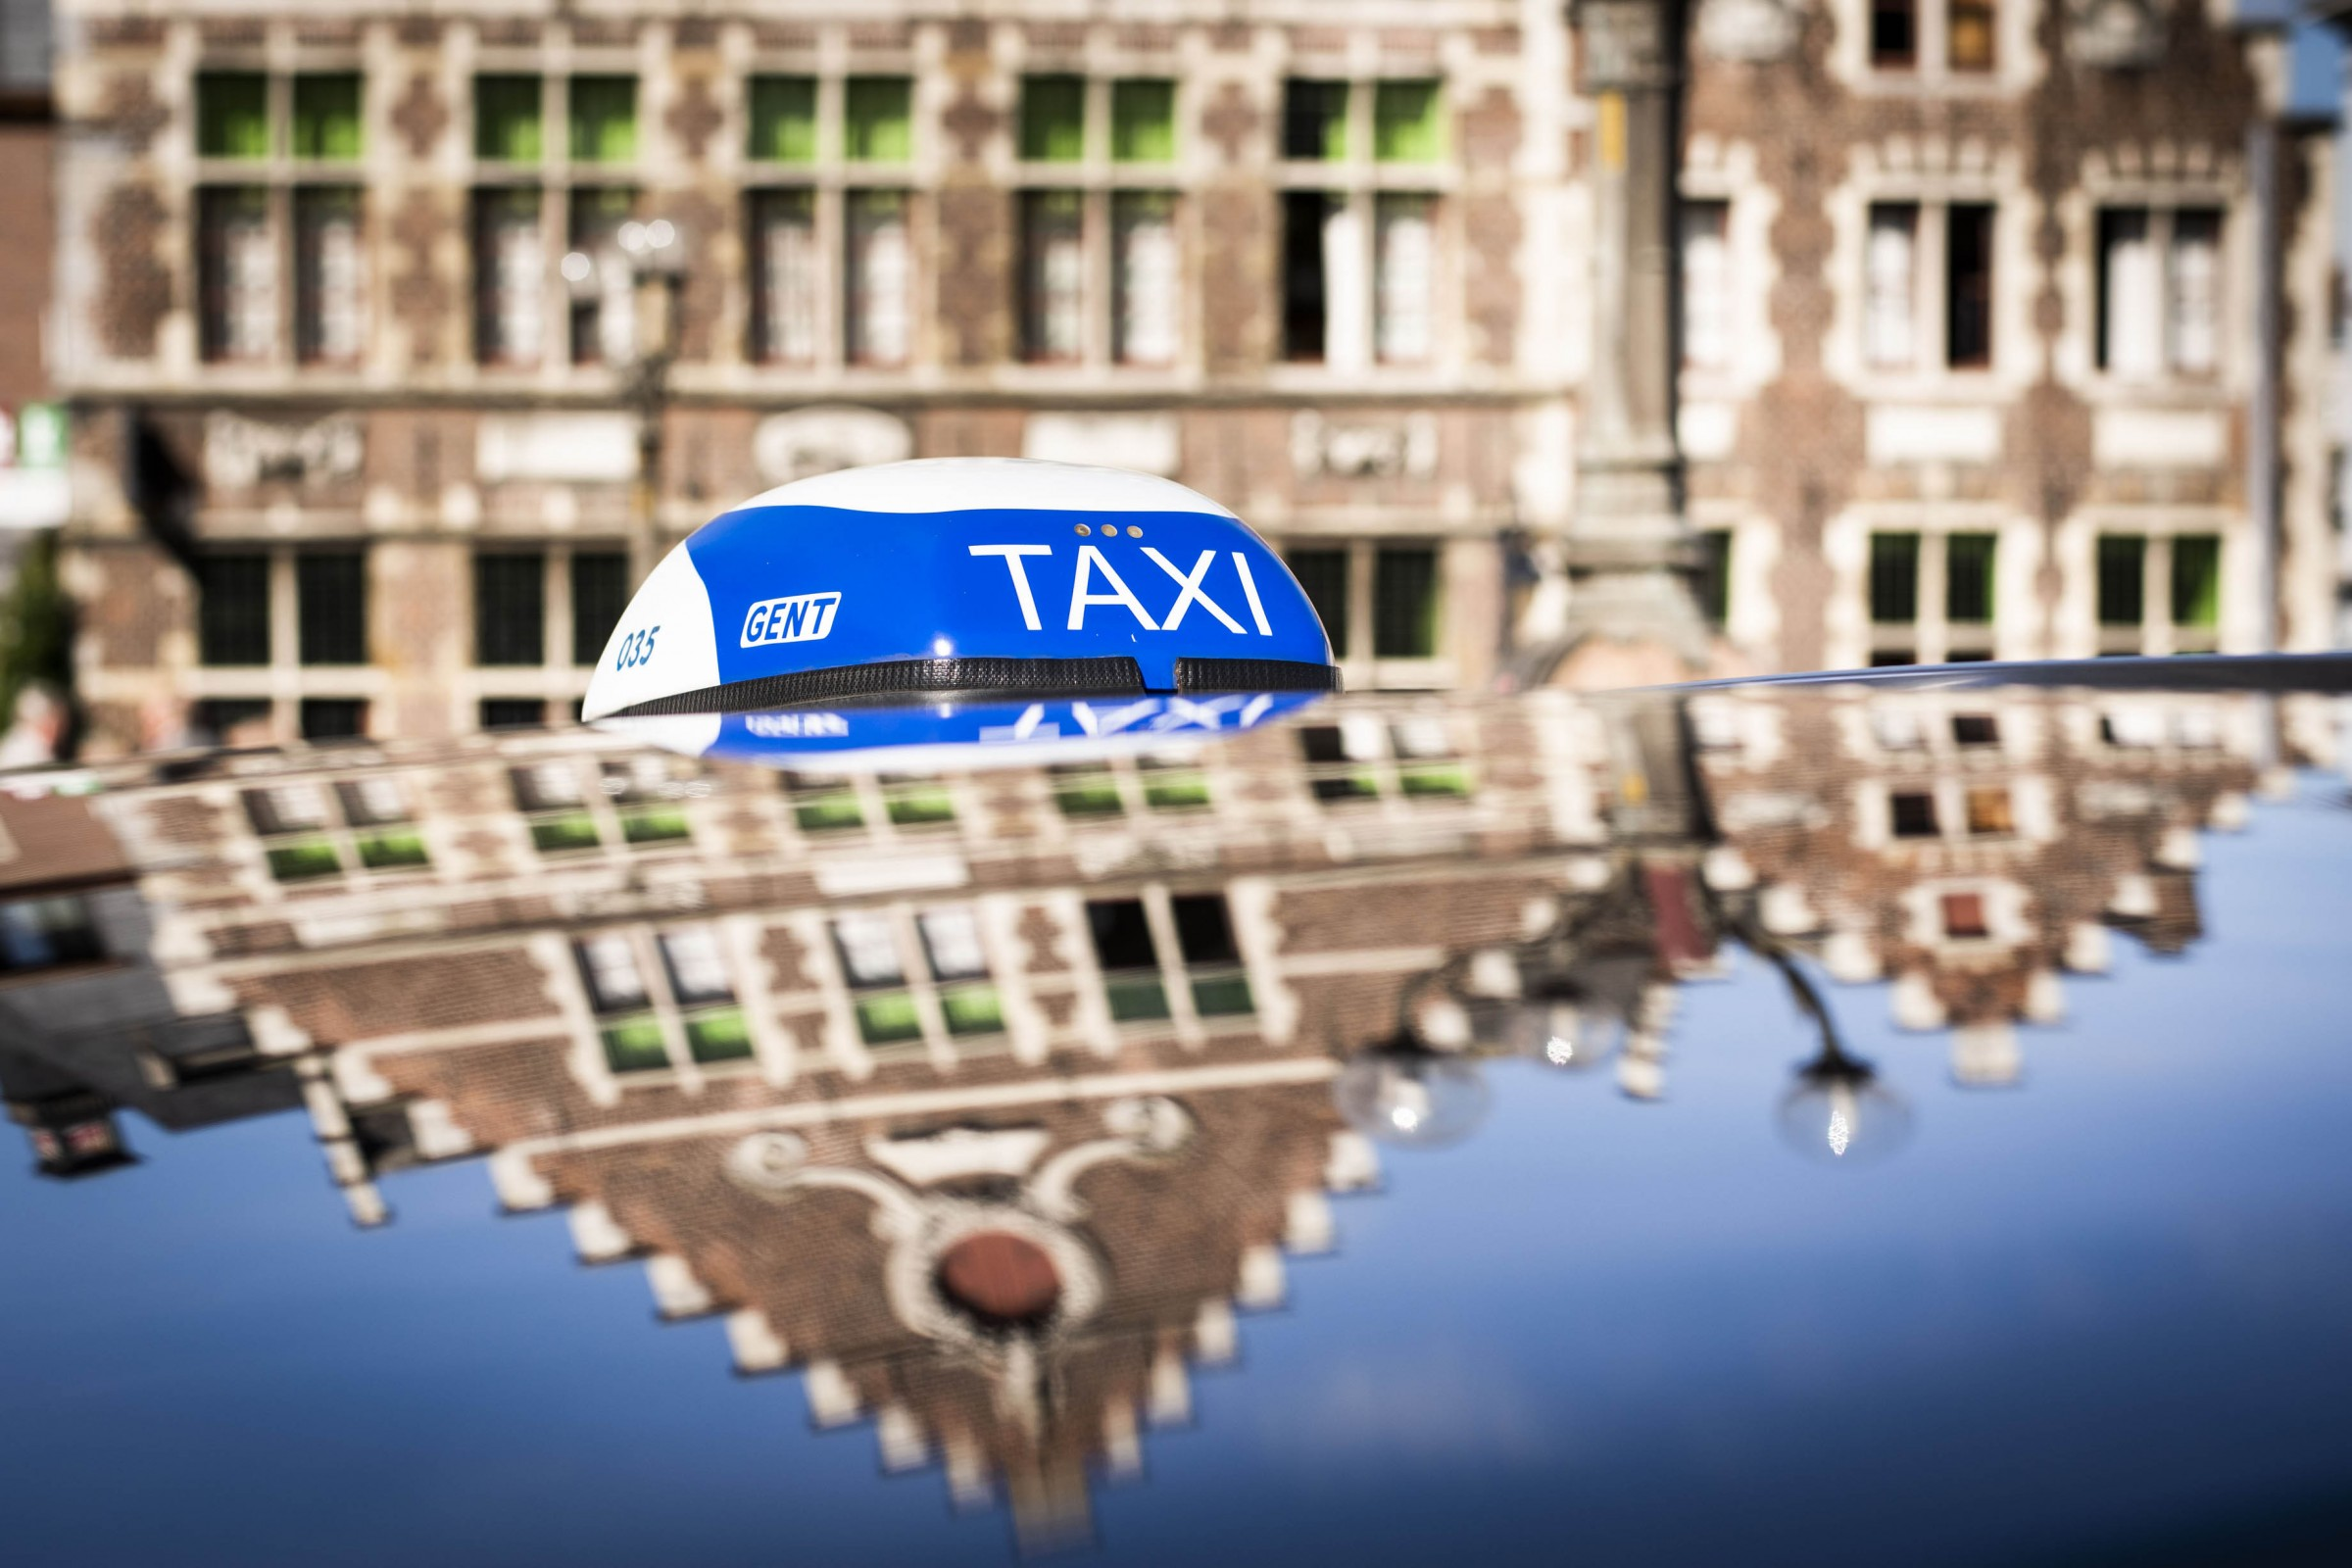 Taxi's-Gent-17.jpg